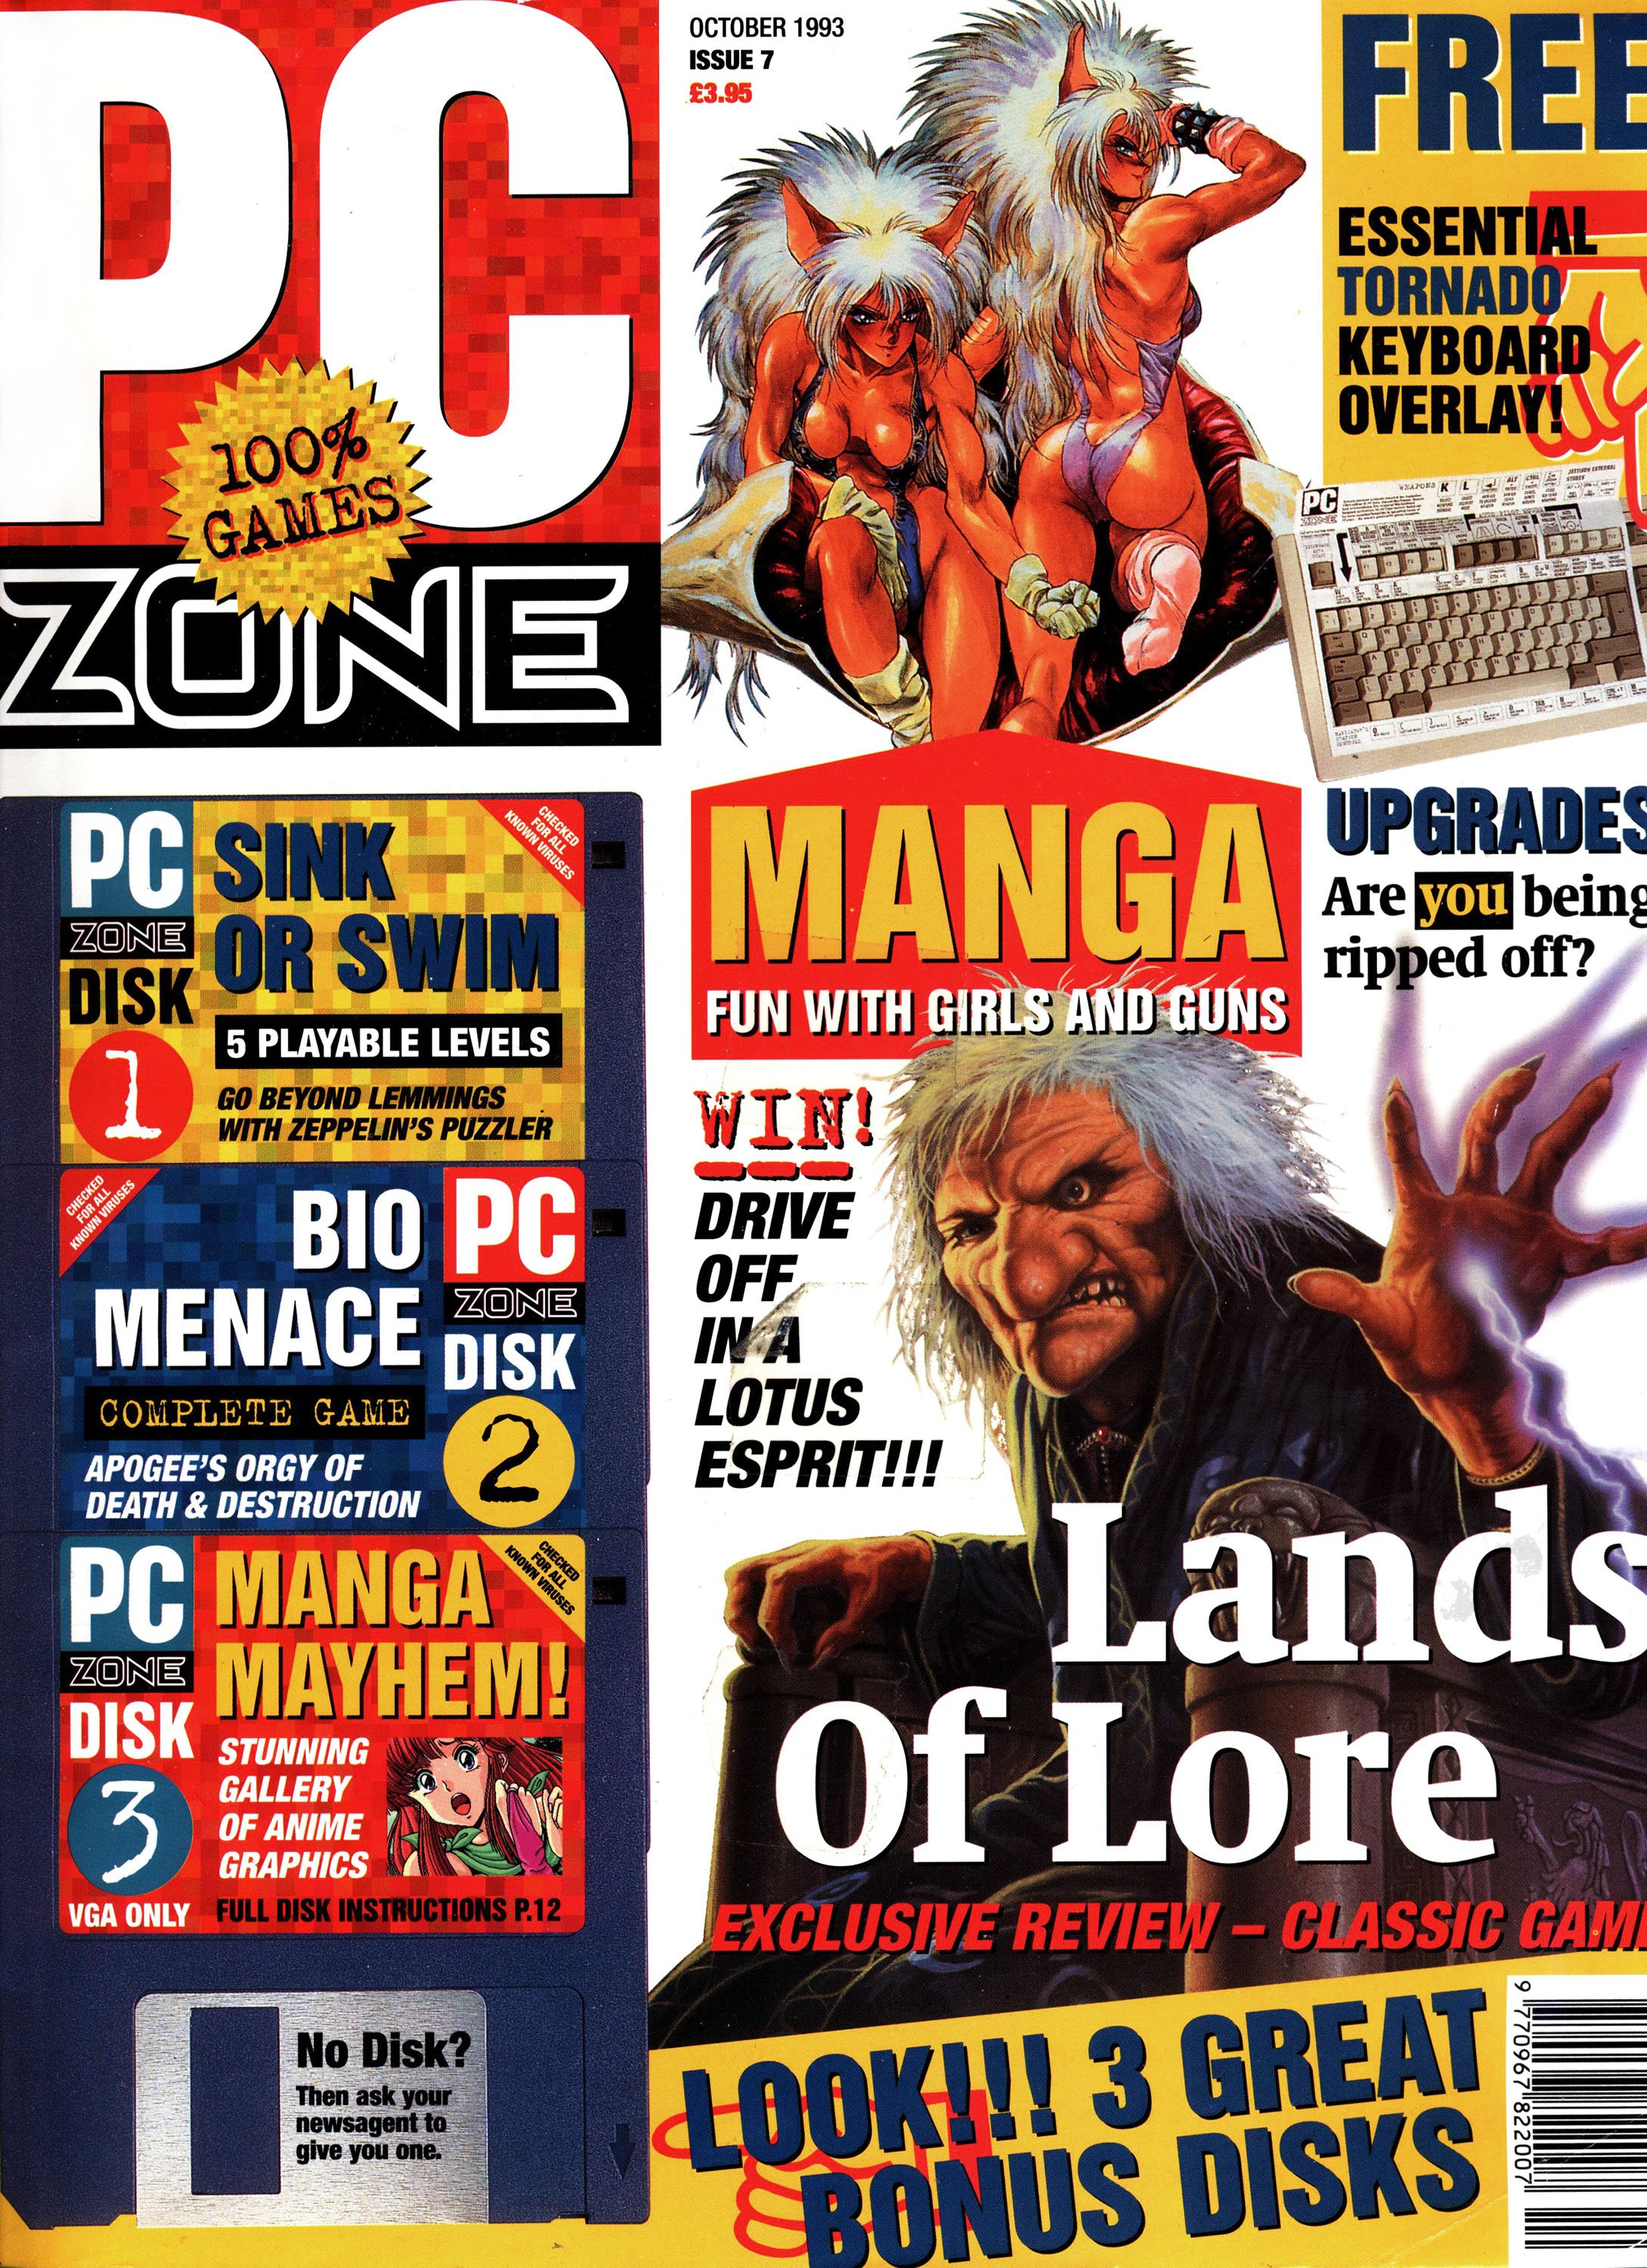 PC Zone Issue 007 (October 1993)